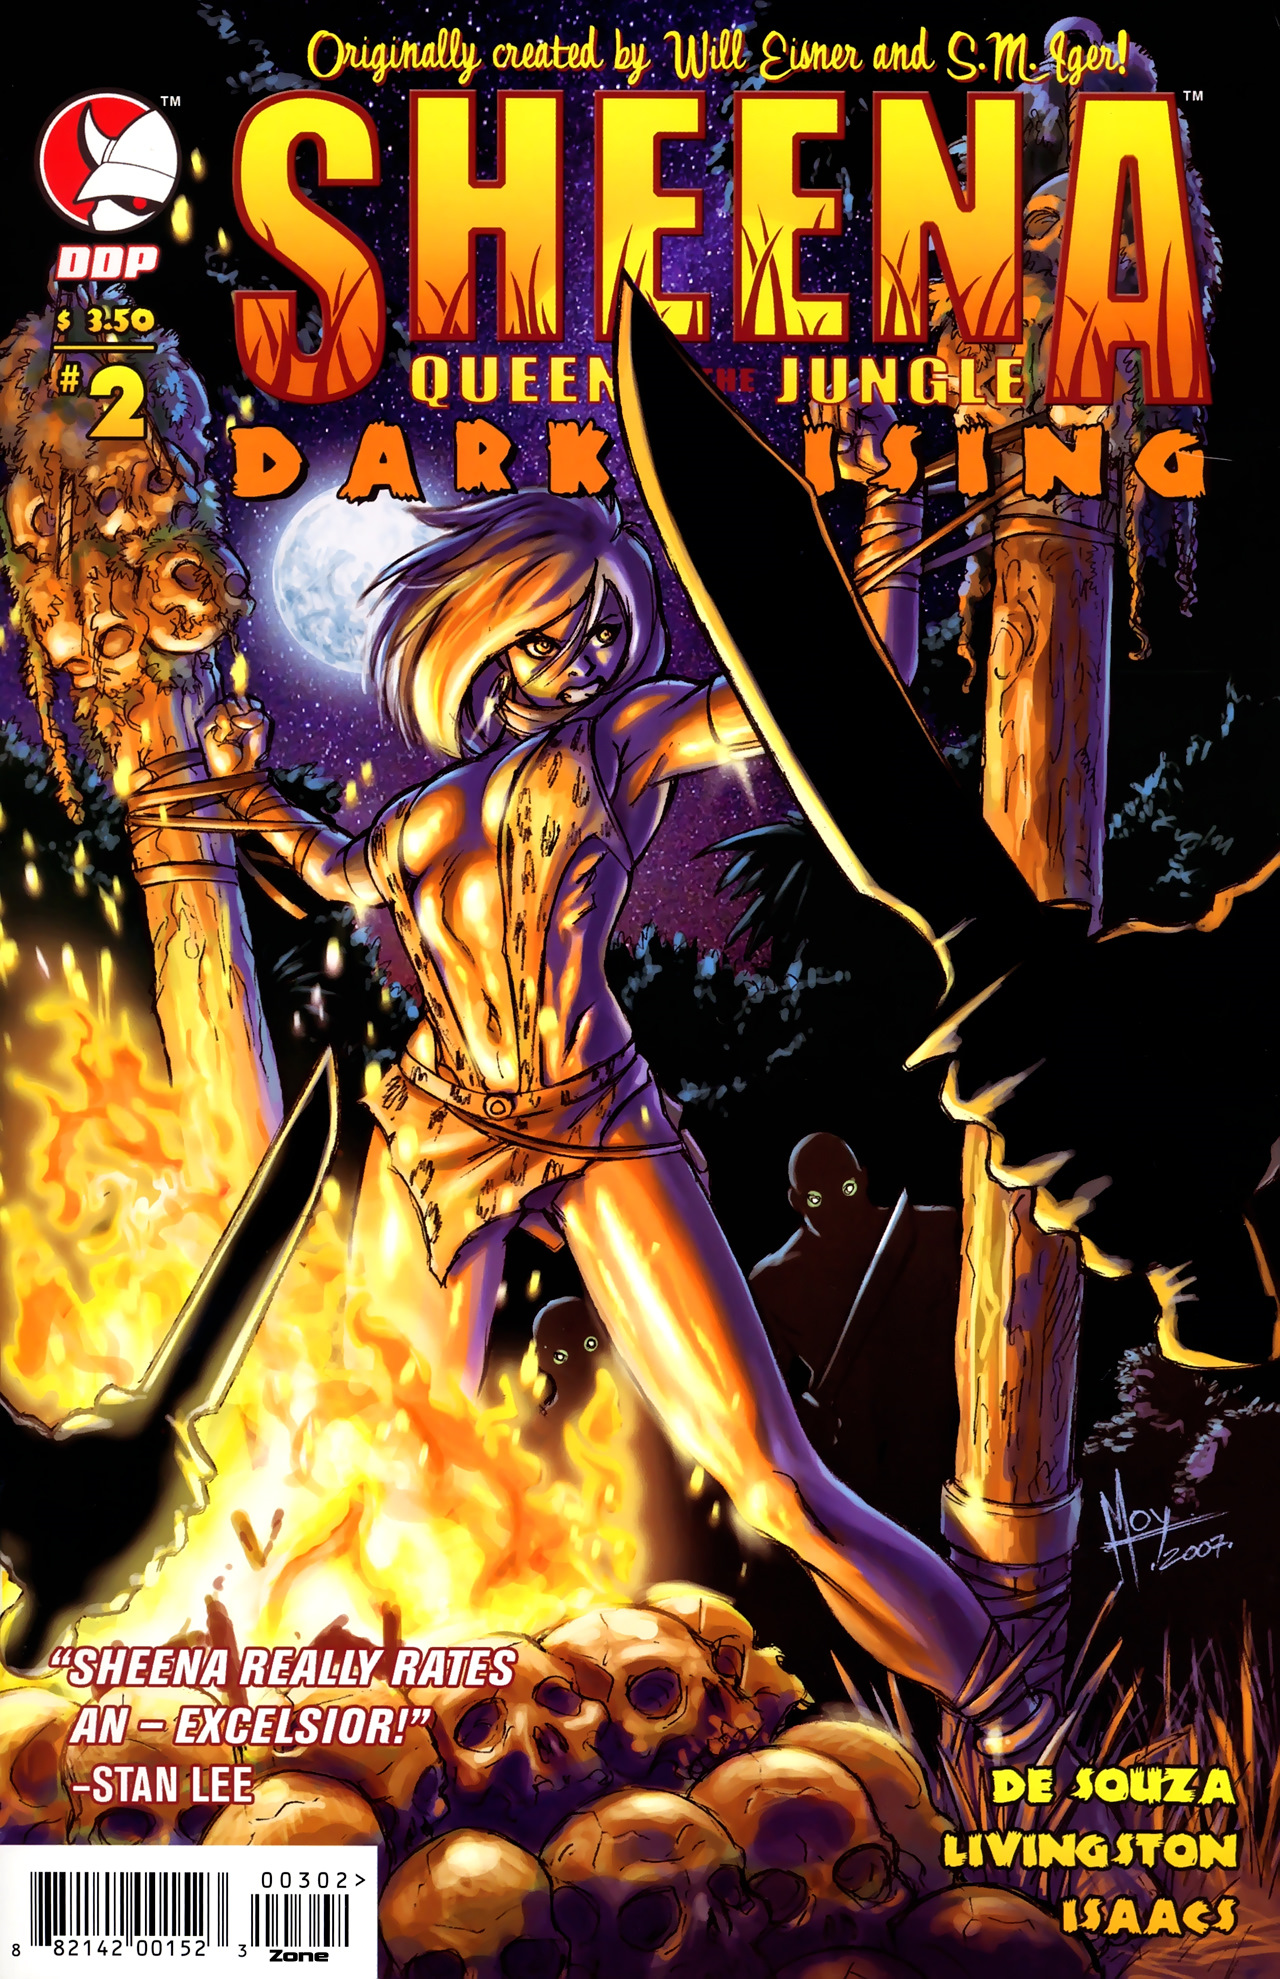 Read online Sheena Queen of the Jungle: Dark Rising comic -  Issue #2 - 1